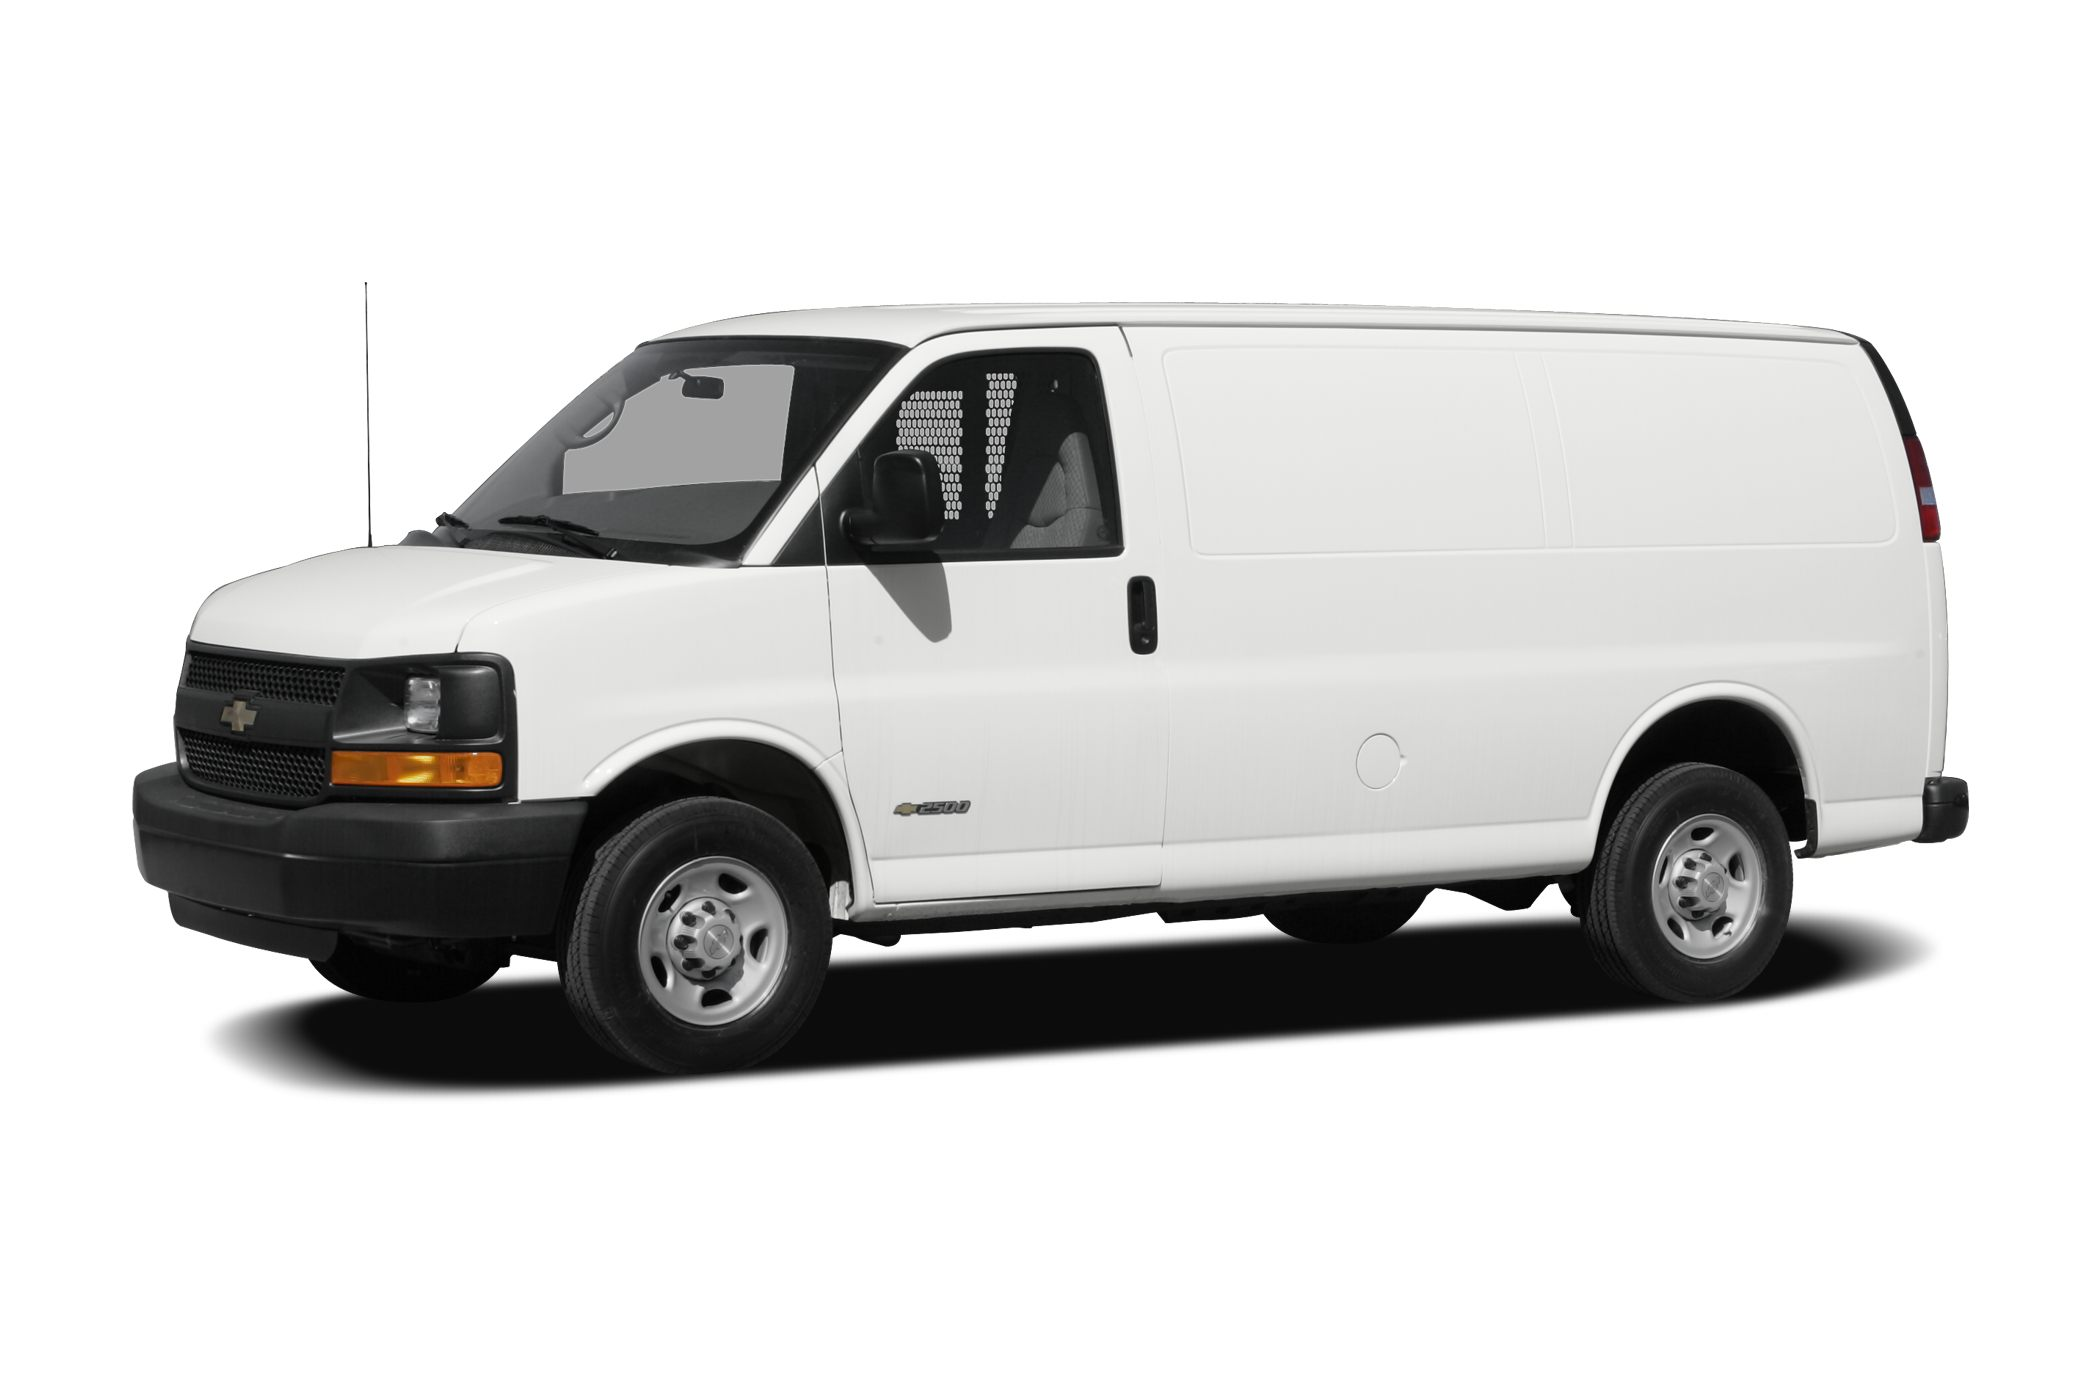 2008 Chevrolet Express 2500 Cargo Cargo Van for sale in Charlotte for $12,995 with 116,915 miles.